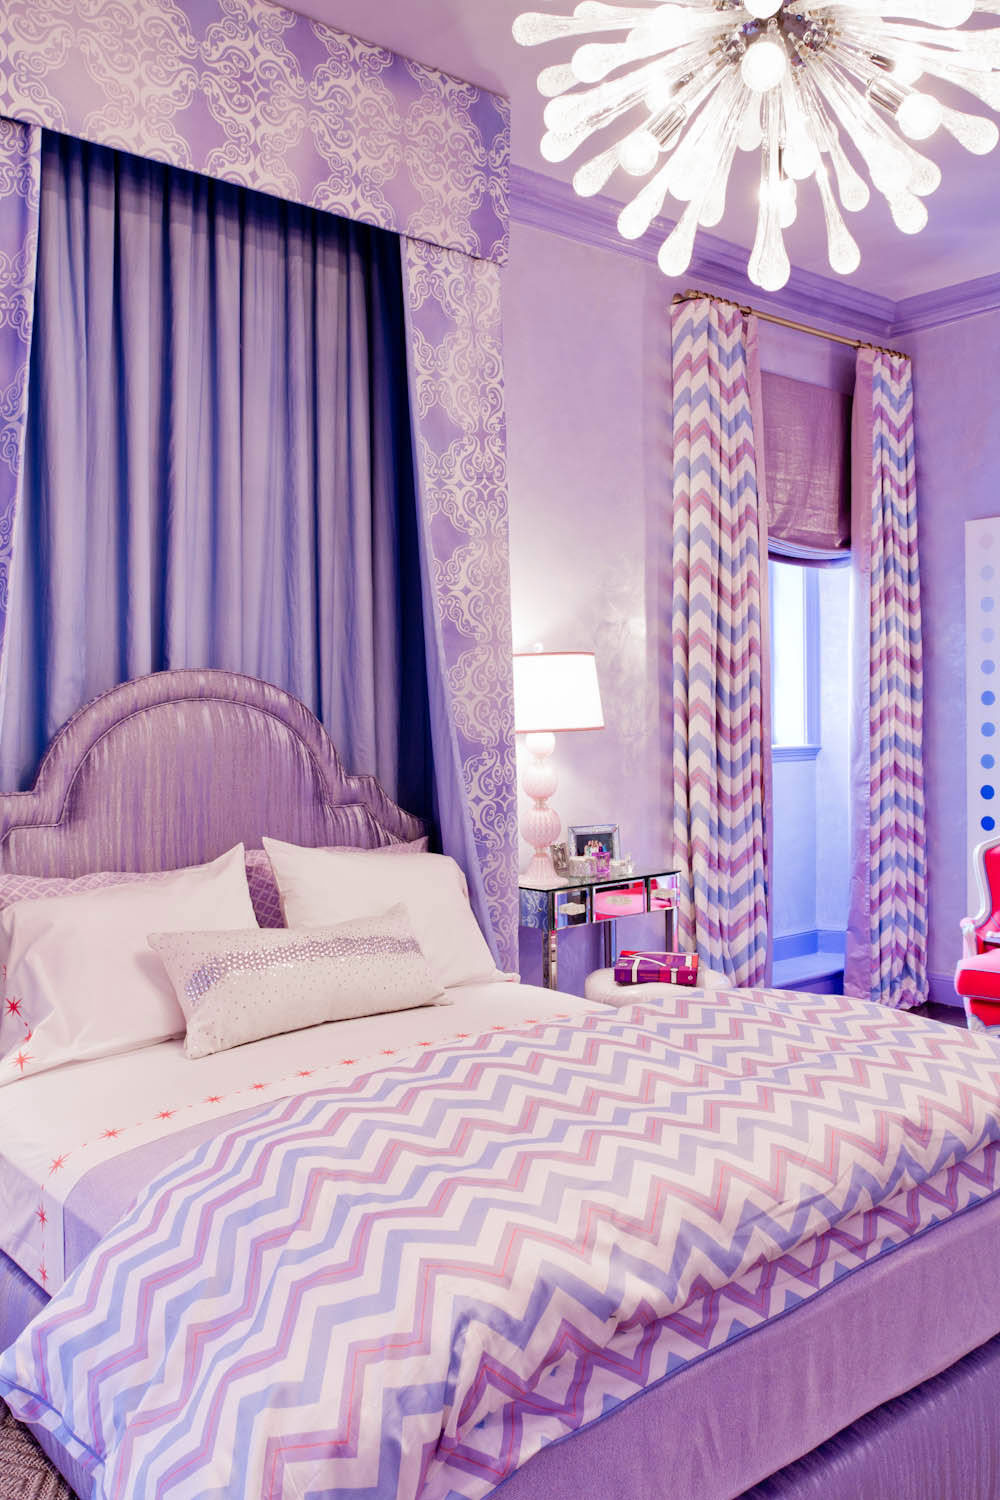 Here-are-some-tips-for-feminine-home-decor5 Here are some-tips-for-feminine-home decor